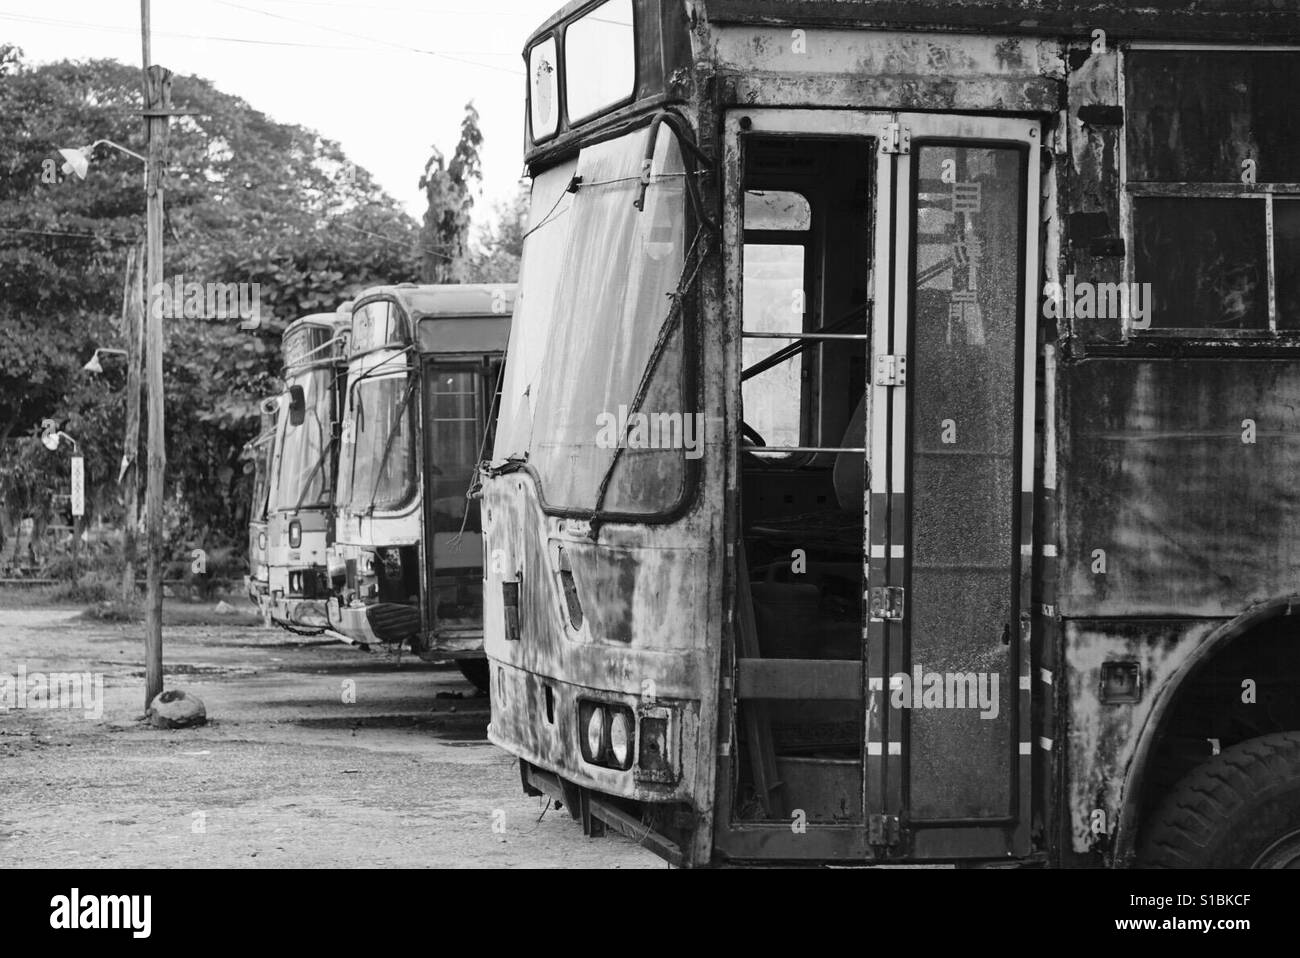 Old busses in Hpa-An Myanmar. - Stock Image